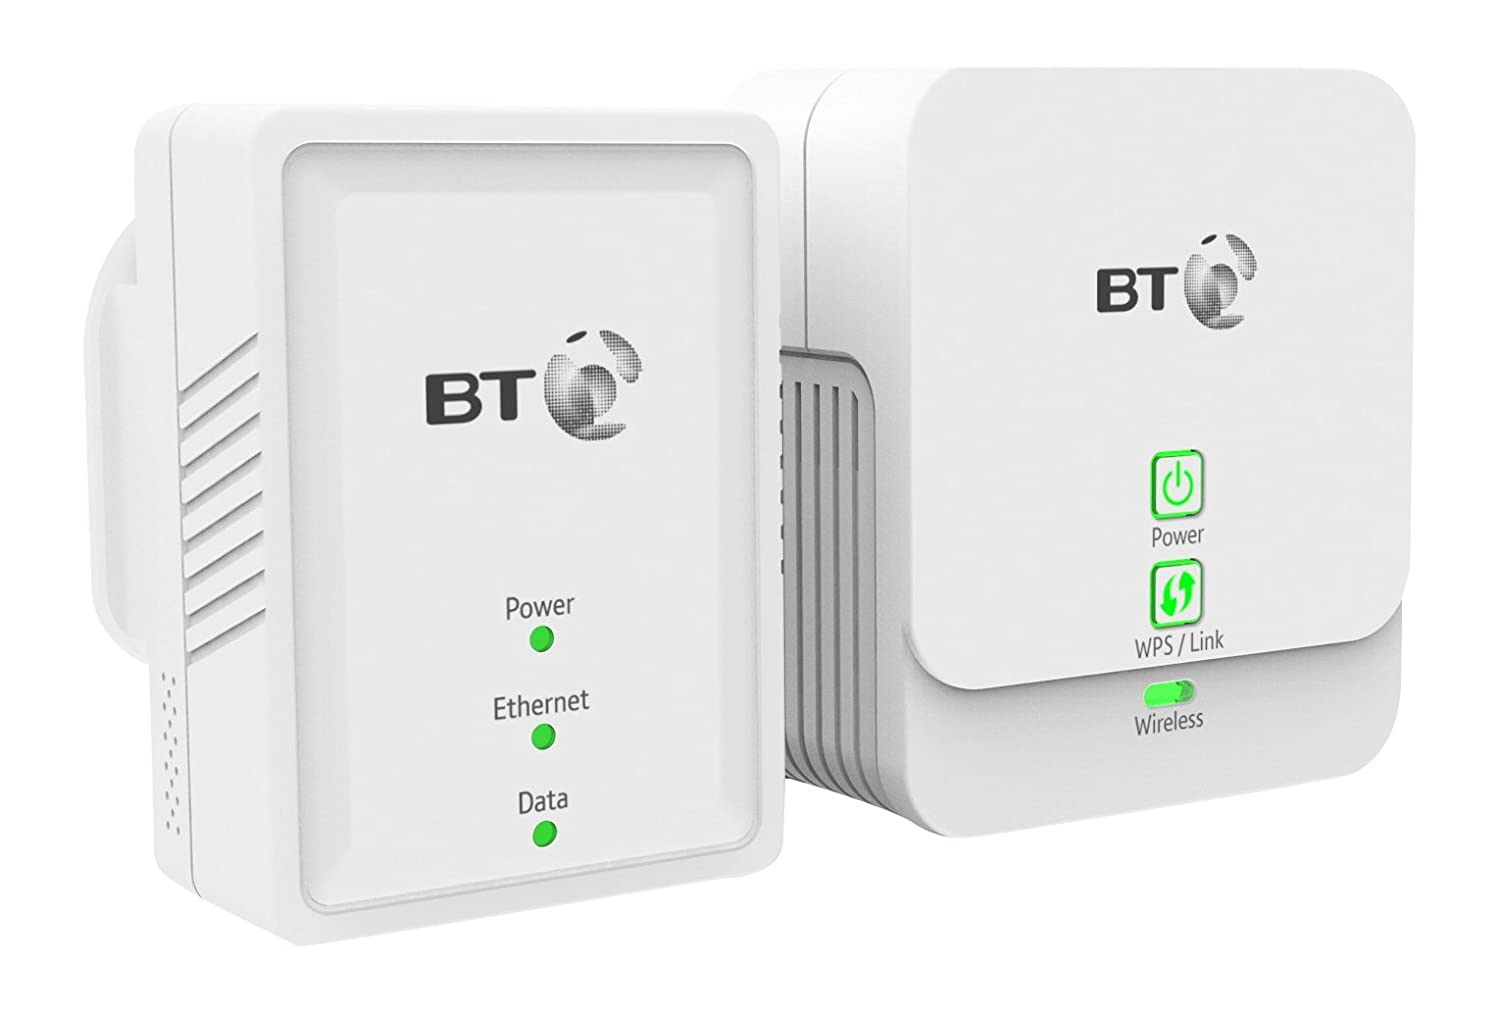 Networking Devices Computers & Accessories BT Essentials Wi-Fi ...